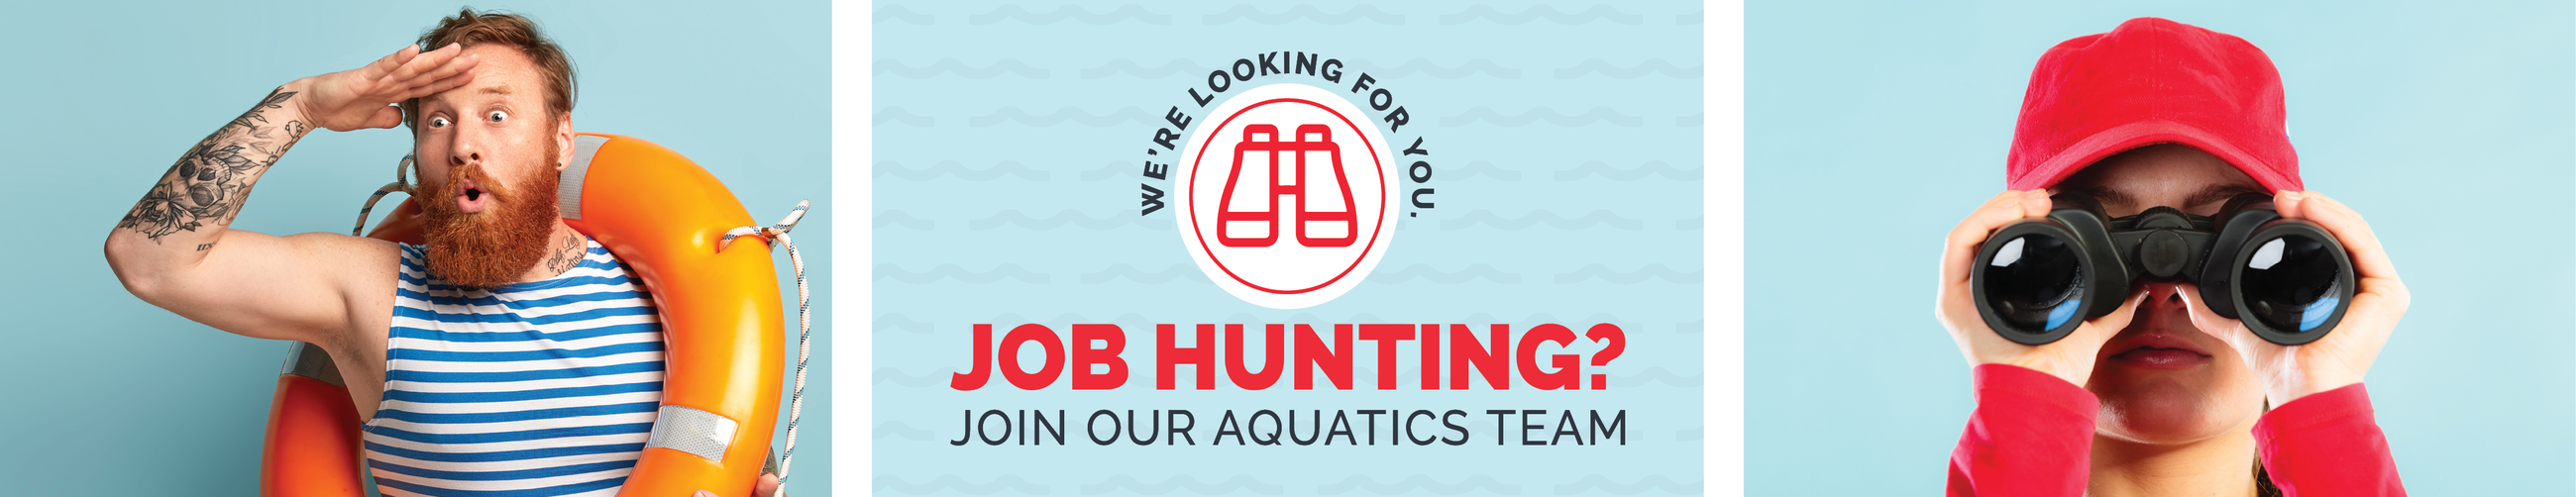 Join Our Aquatics Team header